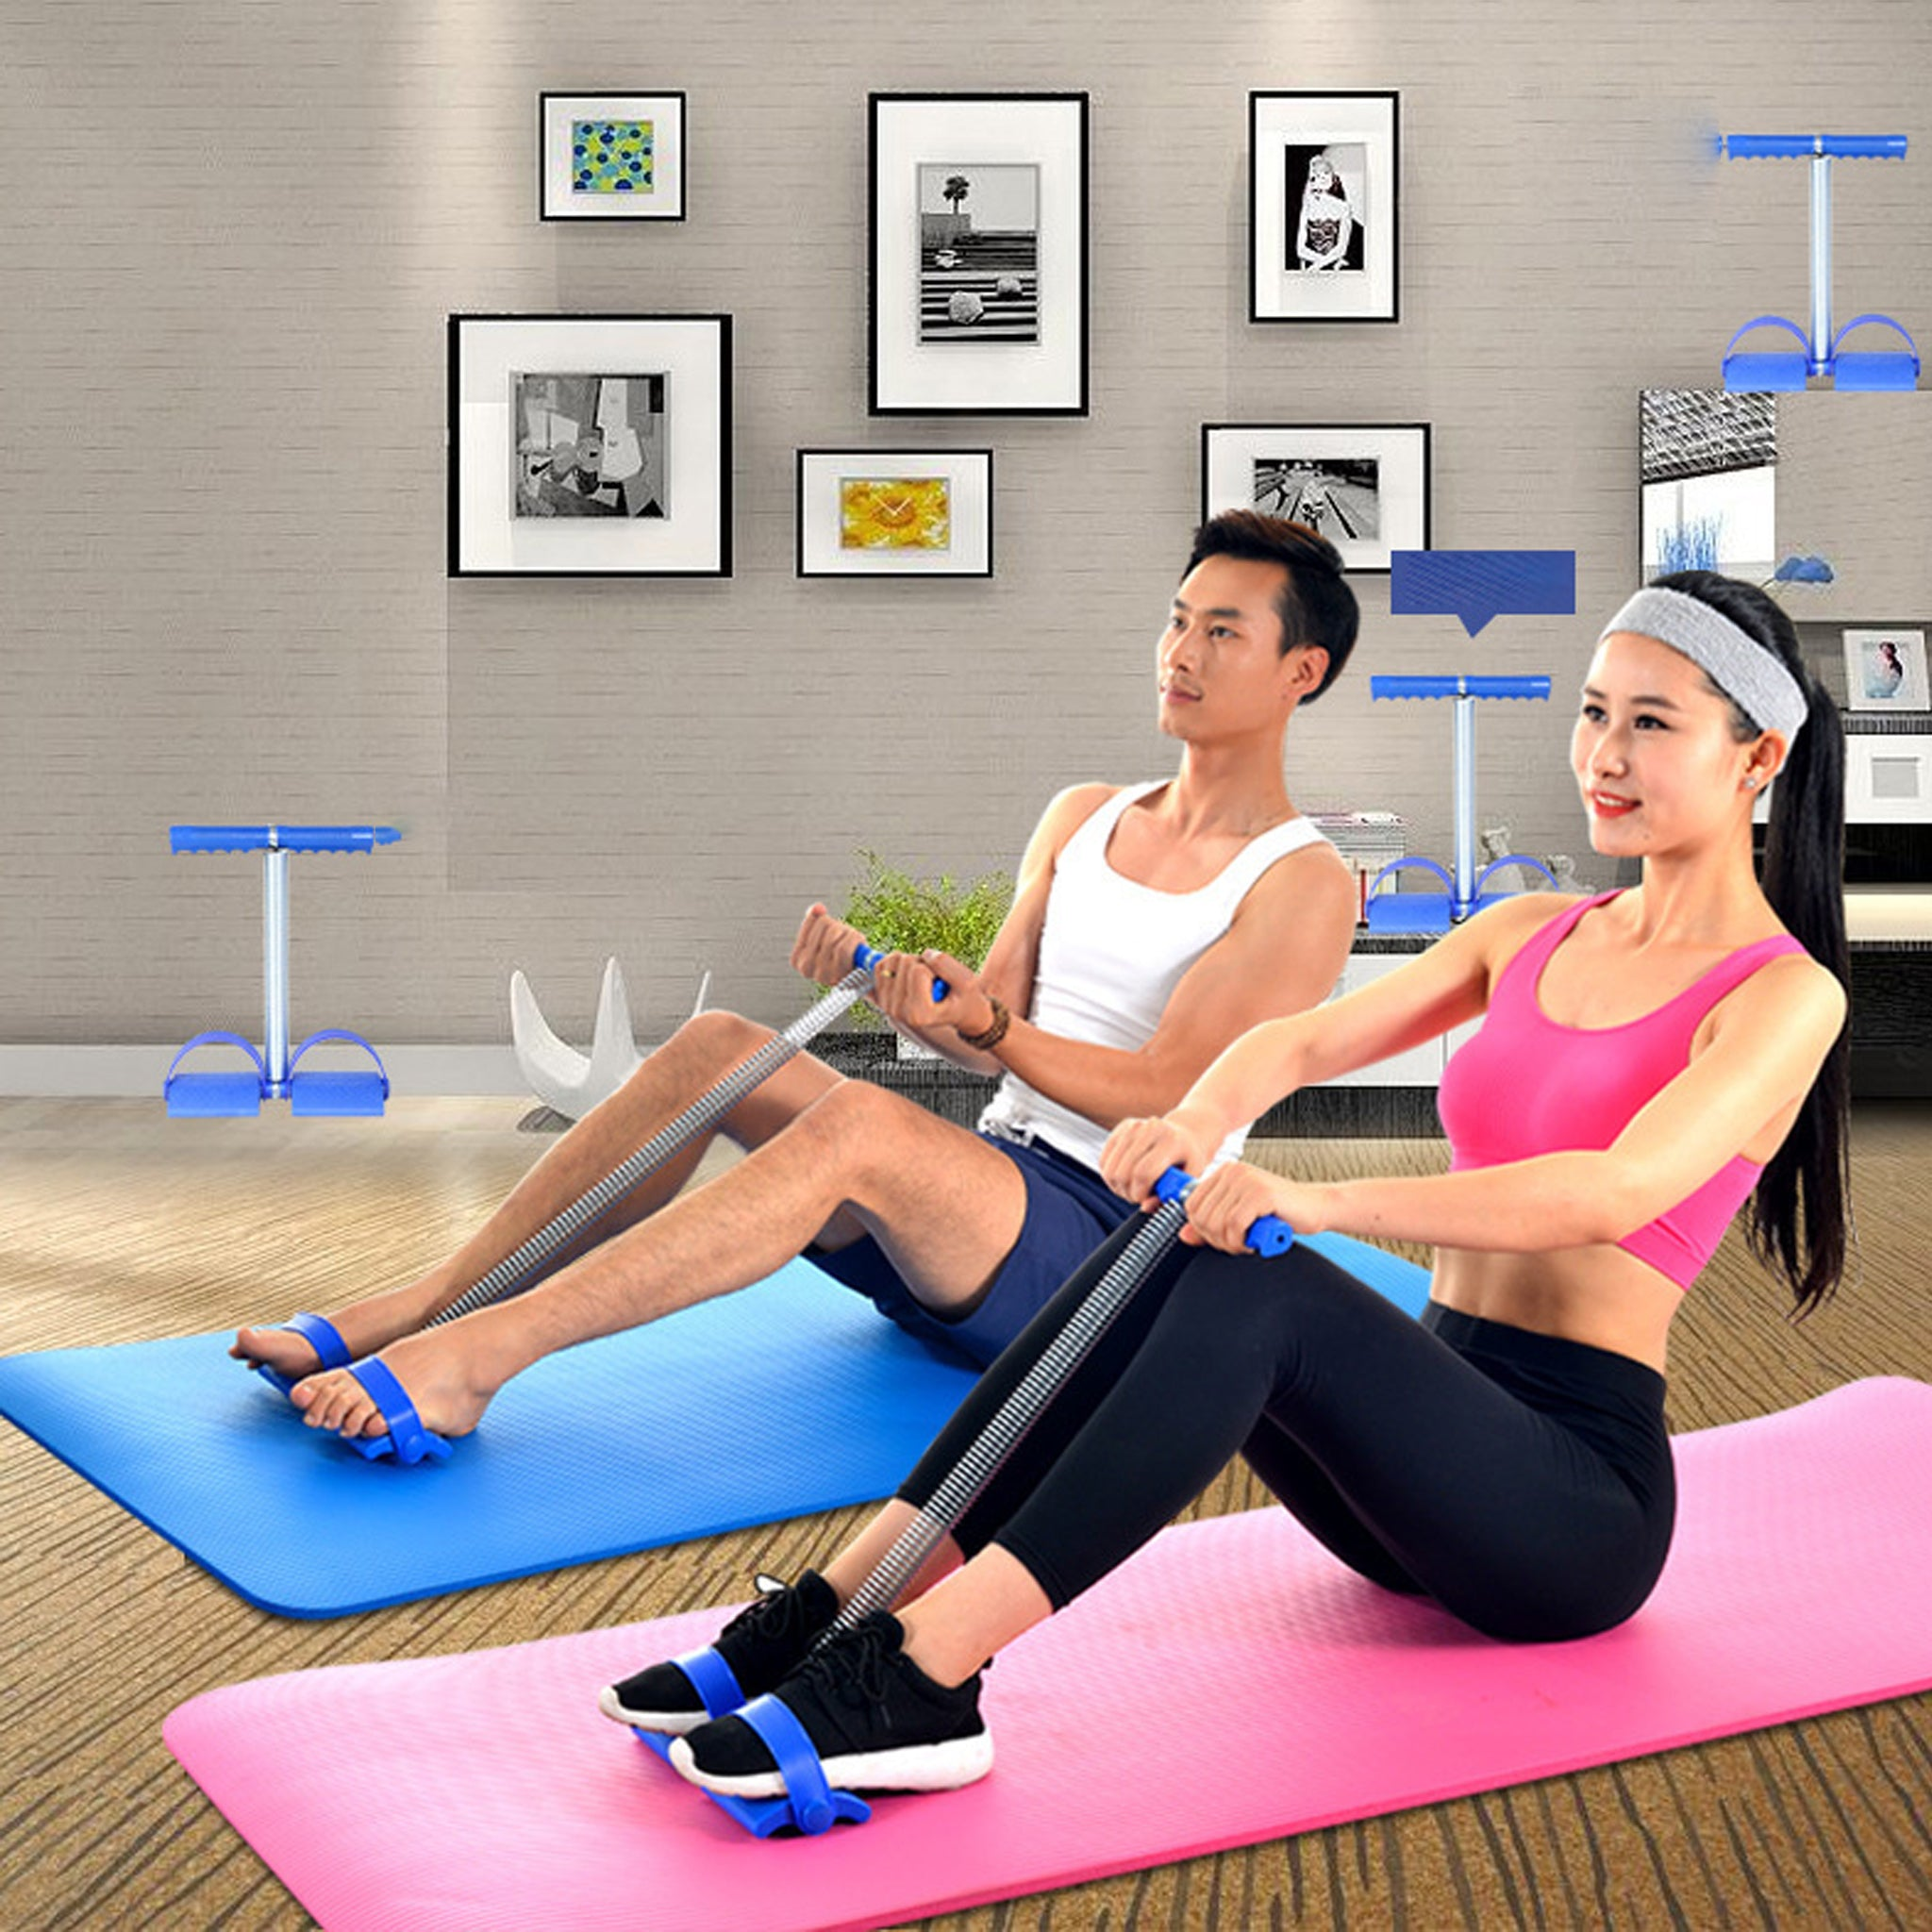 Fitness Sportswear Sit-ups Rally Abdomen Leg Trainer Spring Pedals Drawstring Resistance Band Yoga Stretch Rope